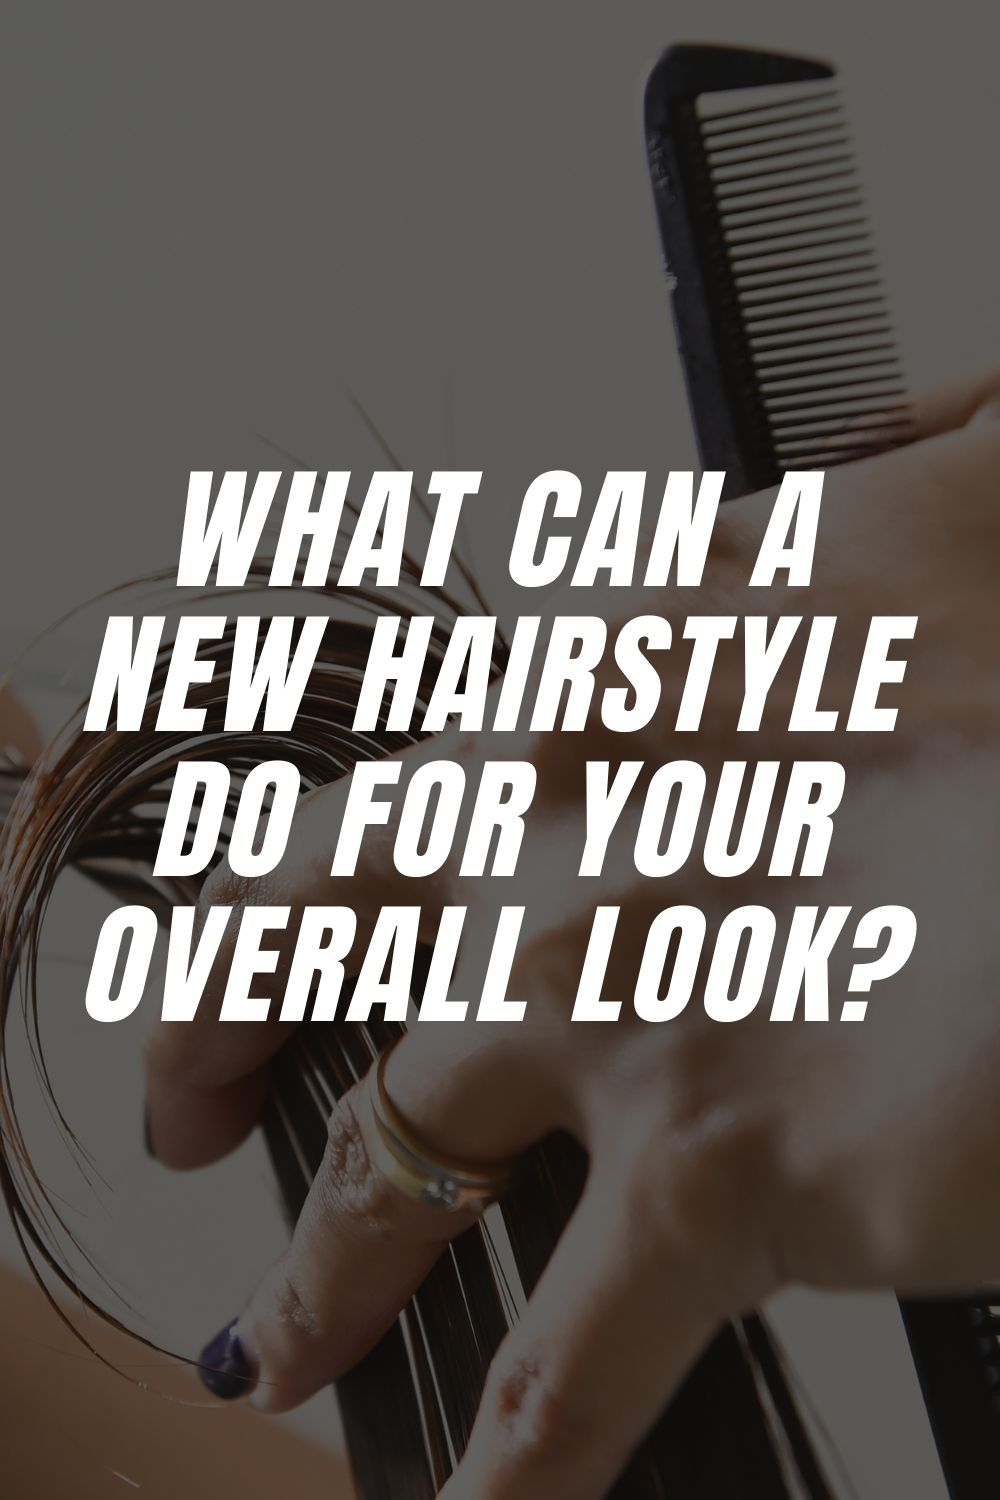 What Can A New Hairstyle Do For Your Overall Look?